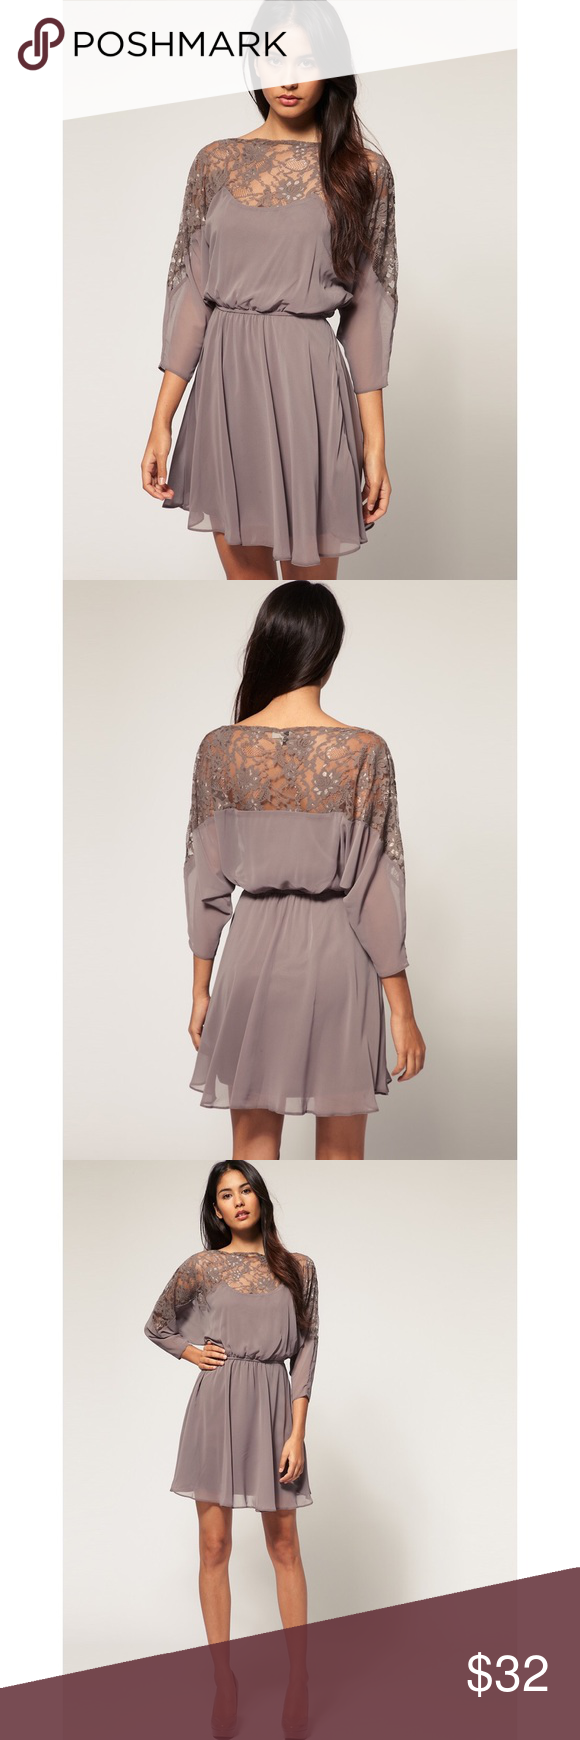 ASOS Dress with Lace Top Super cute! Good condition, worn a few times. Stock photos included to show fit. Asos Dresses